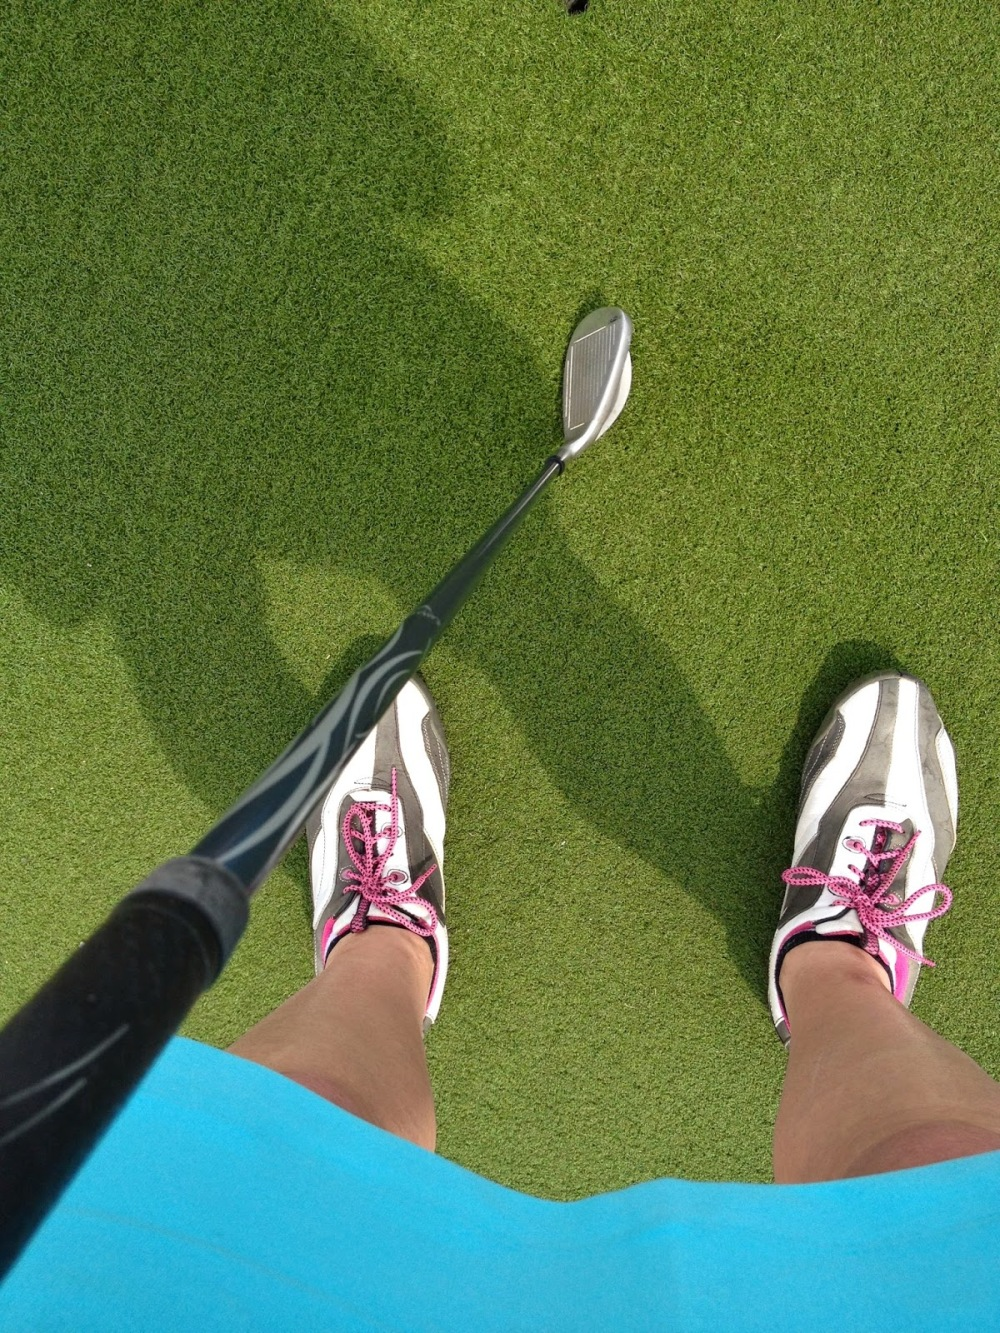 ugly golf shoes, crazy shadow and 9 iron